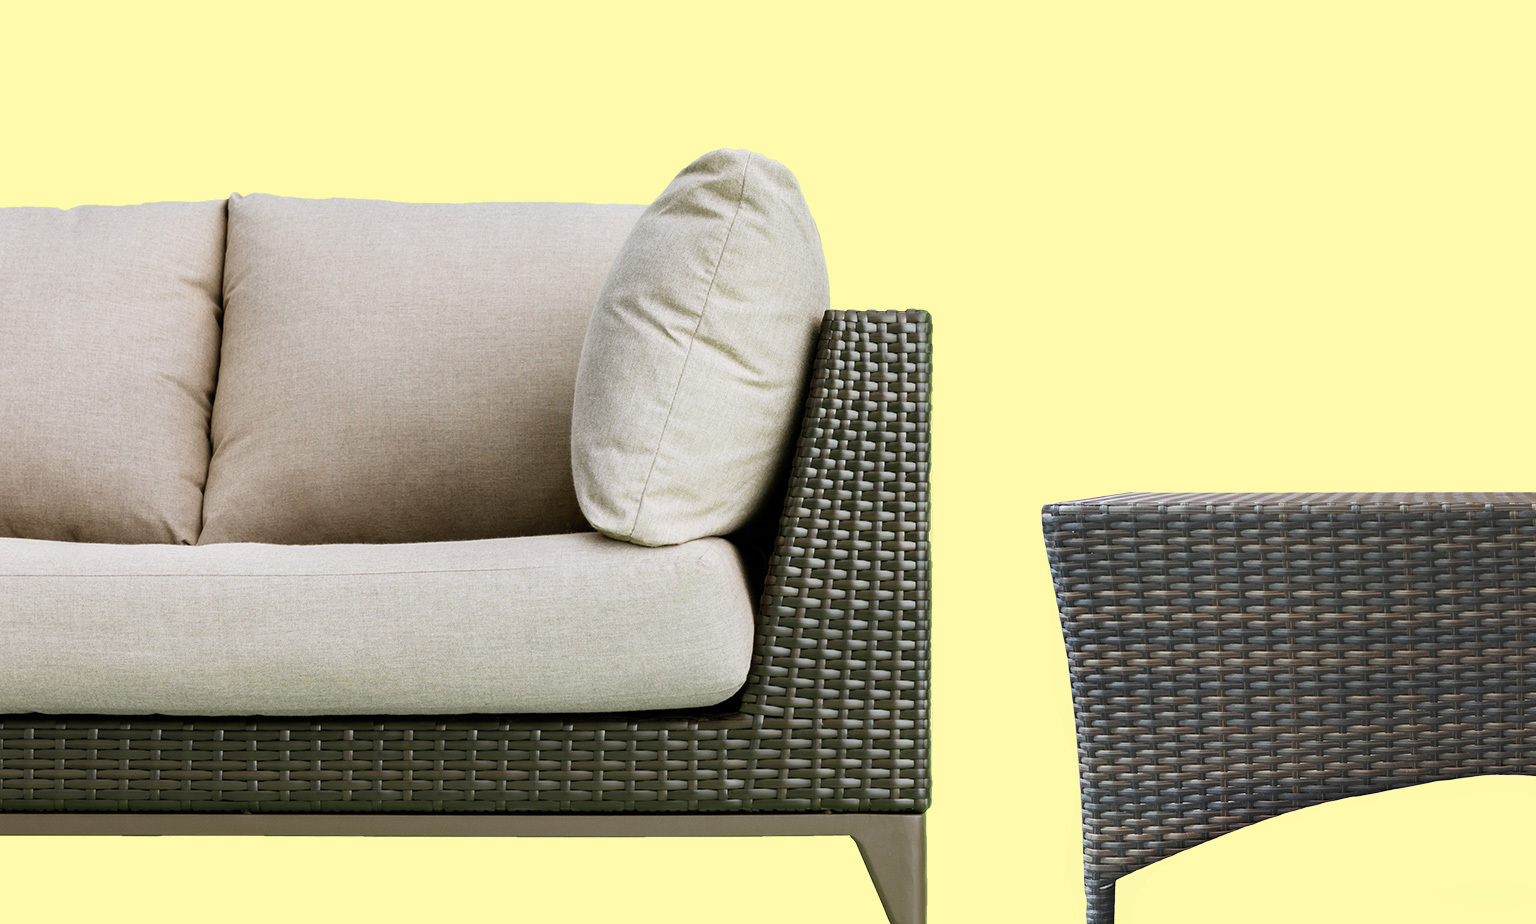 Home and garden garden supplies household items ebay for Best deals on patio furniture sets